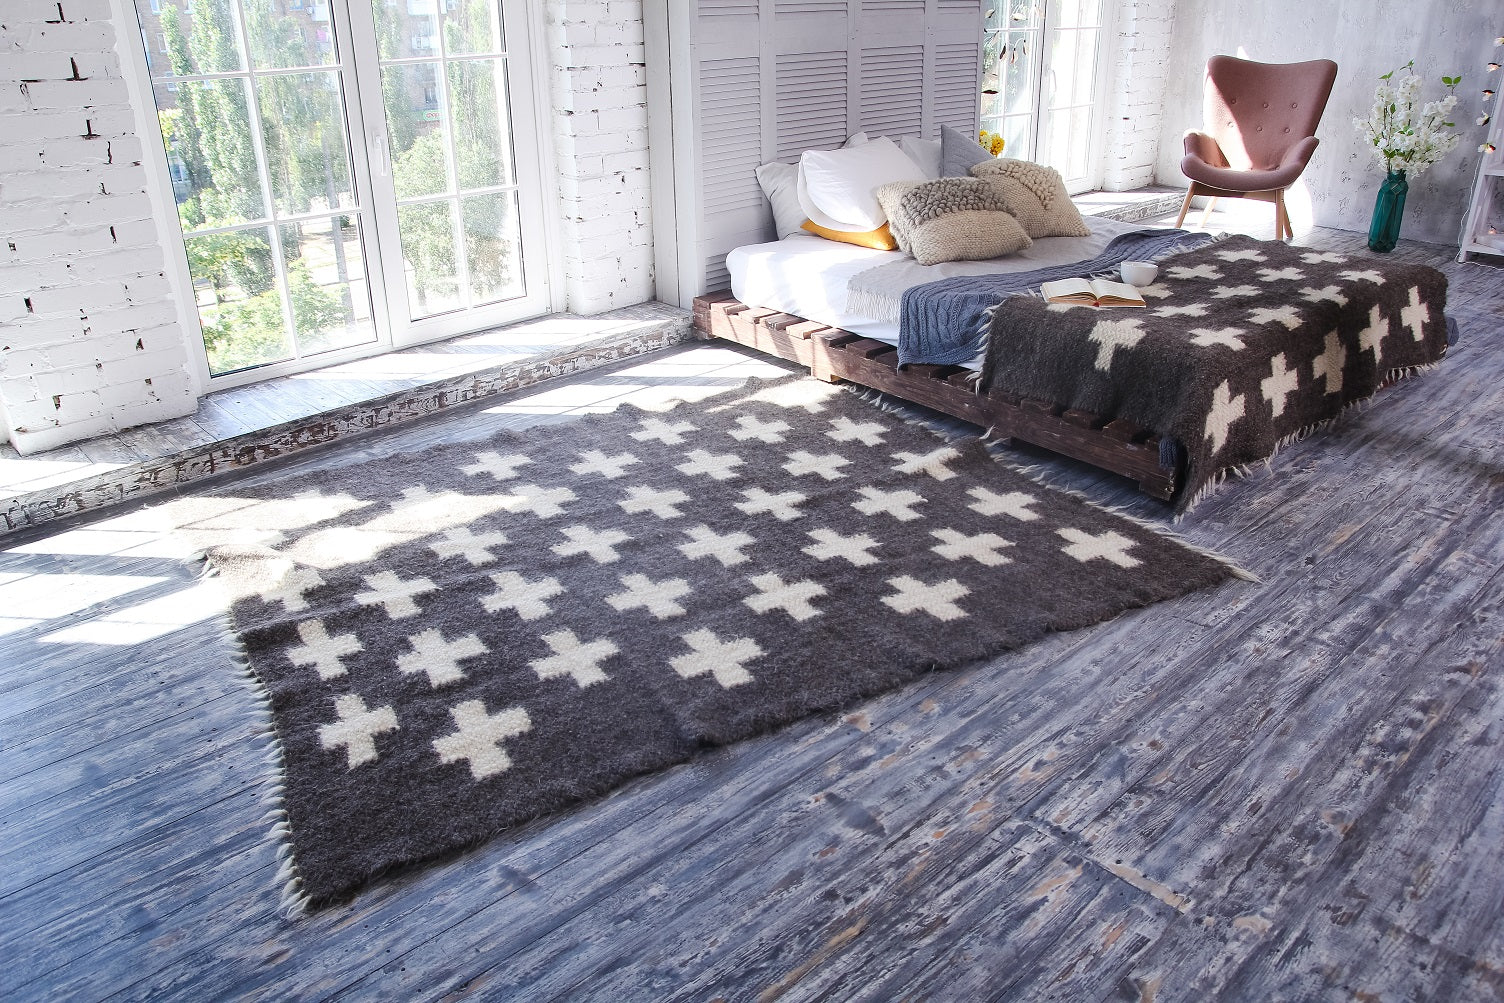 Swiss cross area rug - 2